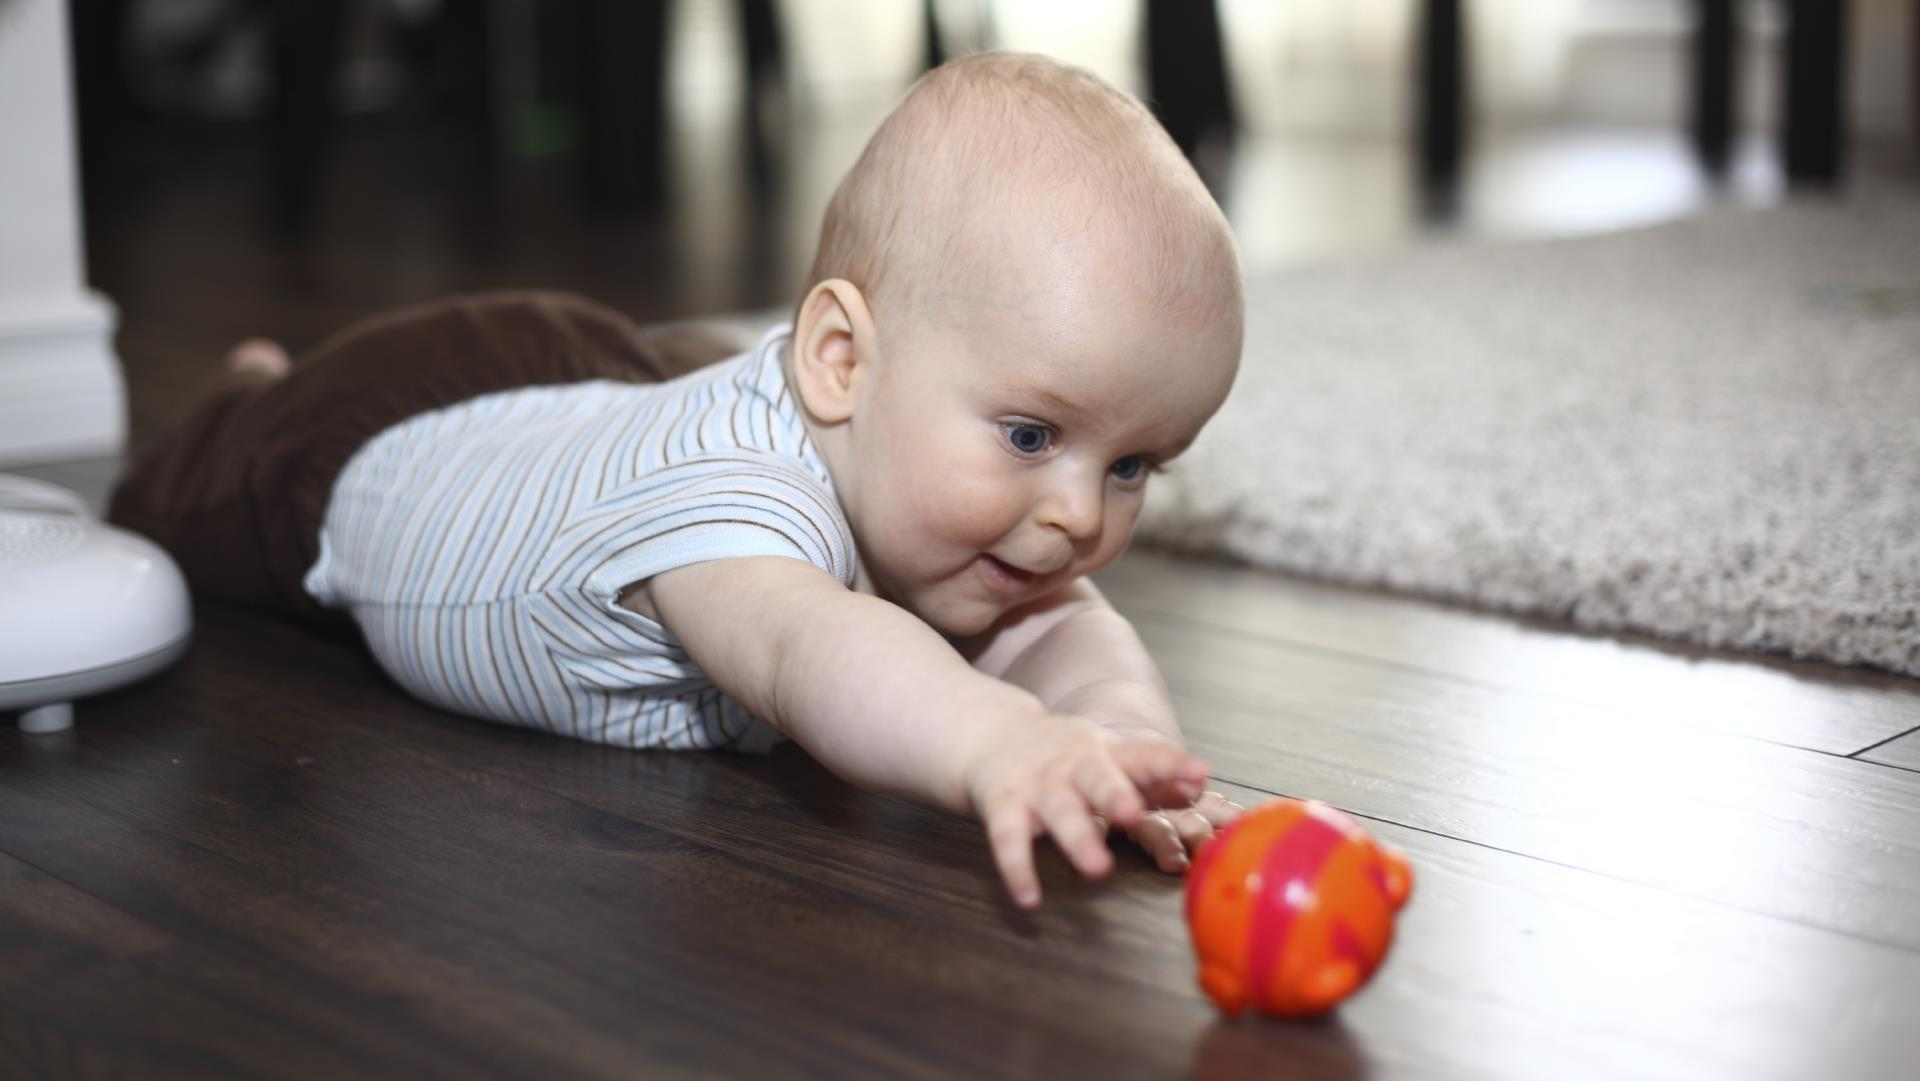 Baby reaching for toy